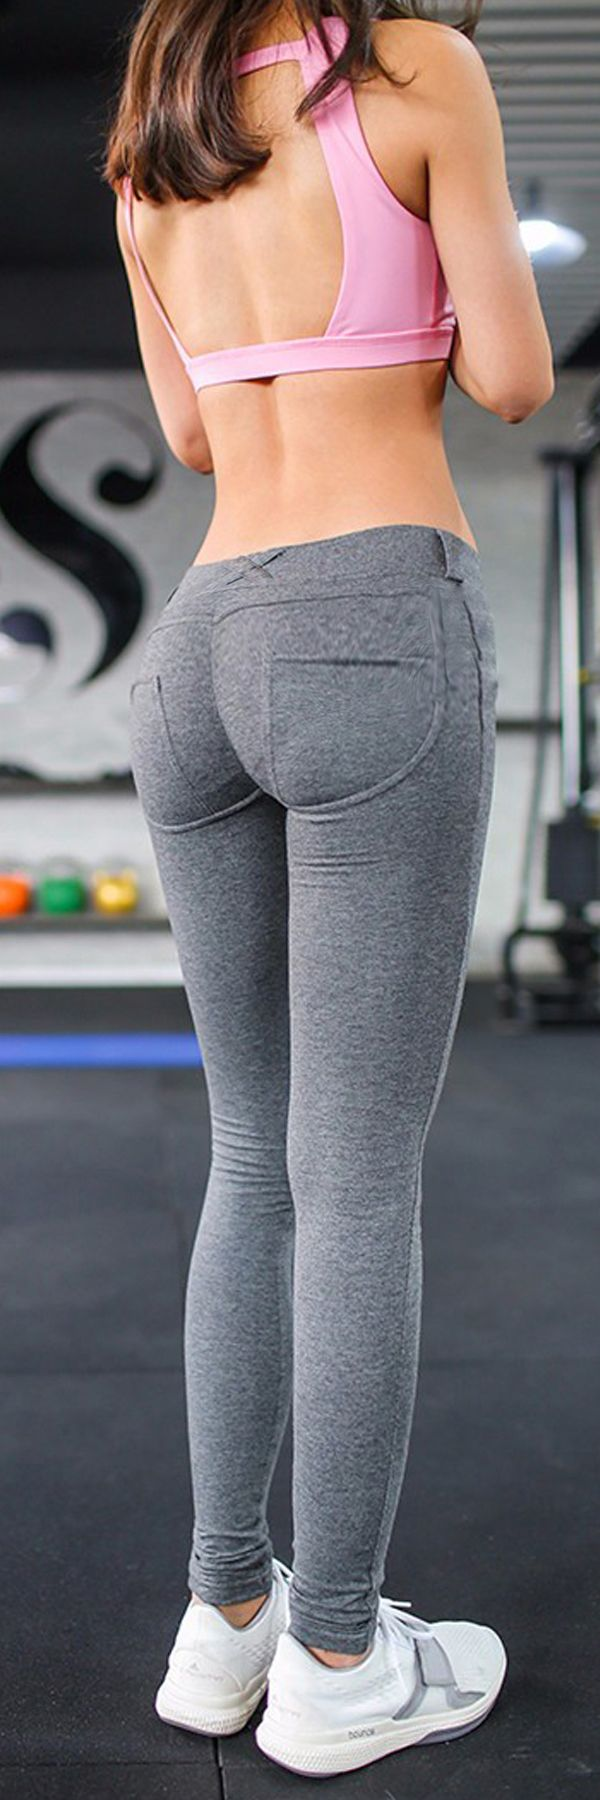 I'm crazy about these butt-lifting leggings! They are really perfect for exercising or just some flirty fun! They are made from a high quality compression blend material which lifts your hips and butt to give you that celebrity look you have wanted! Get a pair for yourself and you will understand exactly why these functional leggings are the hottest thing this season! Don't forget to use PIN20 at checkout for an additional 20% off your entire order!